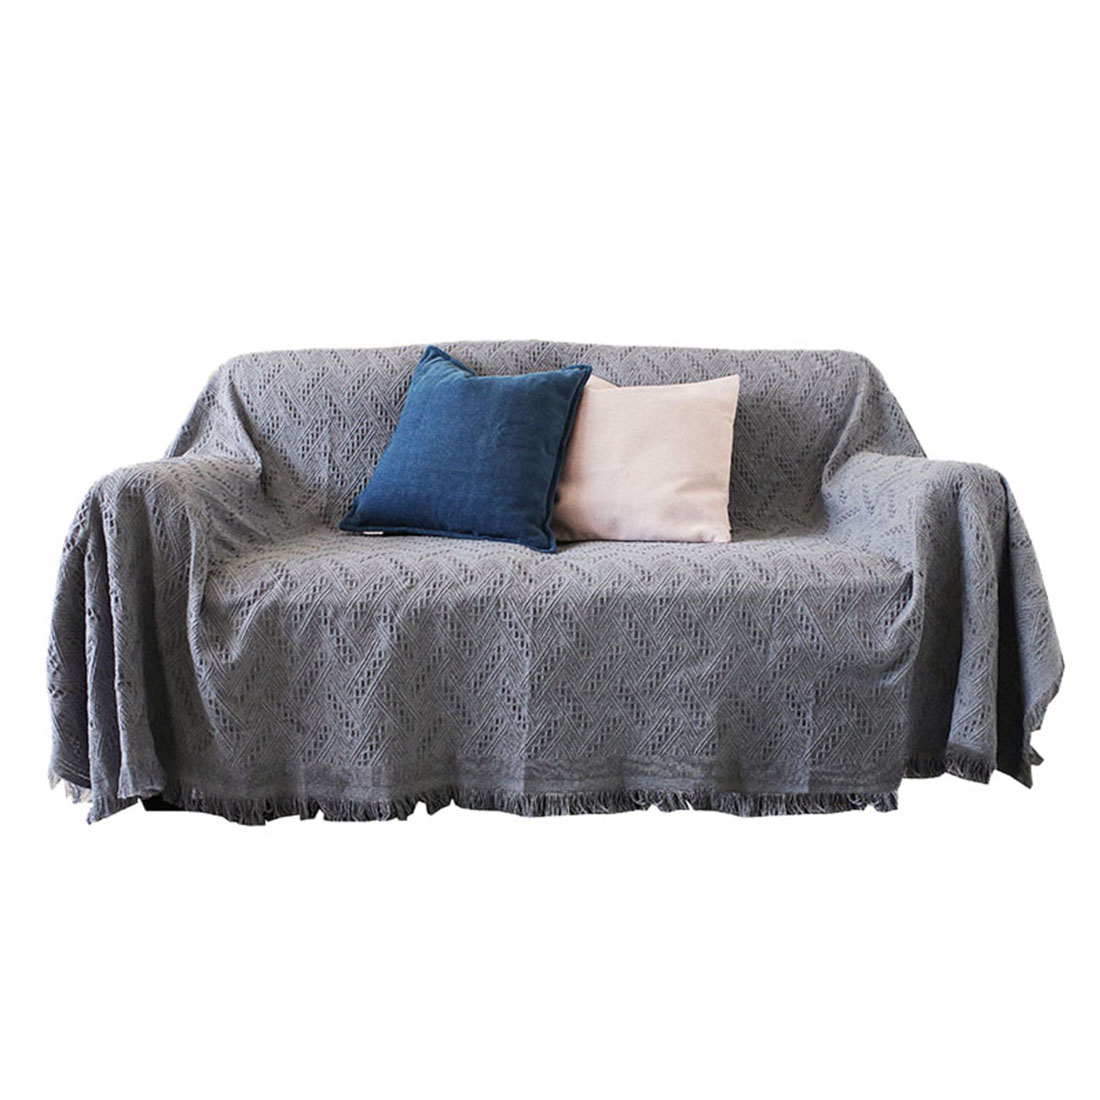 Newly Hot Sale Slipcover Sofa Covers Dust Proof Soft Couch